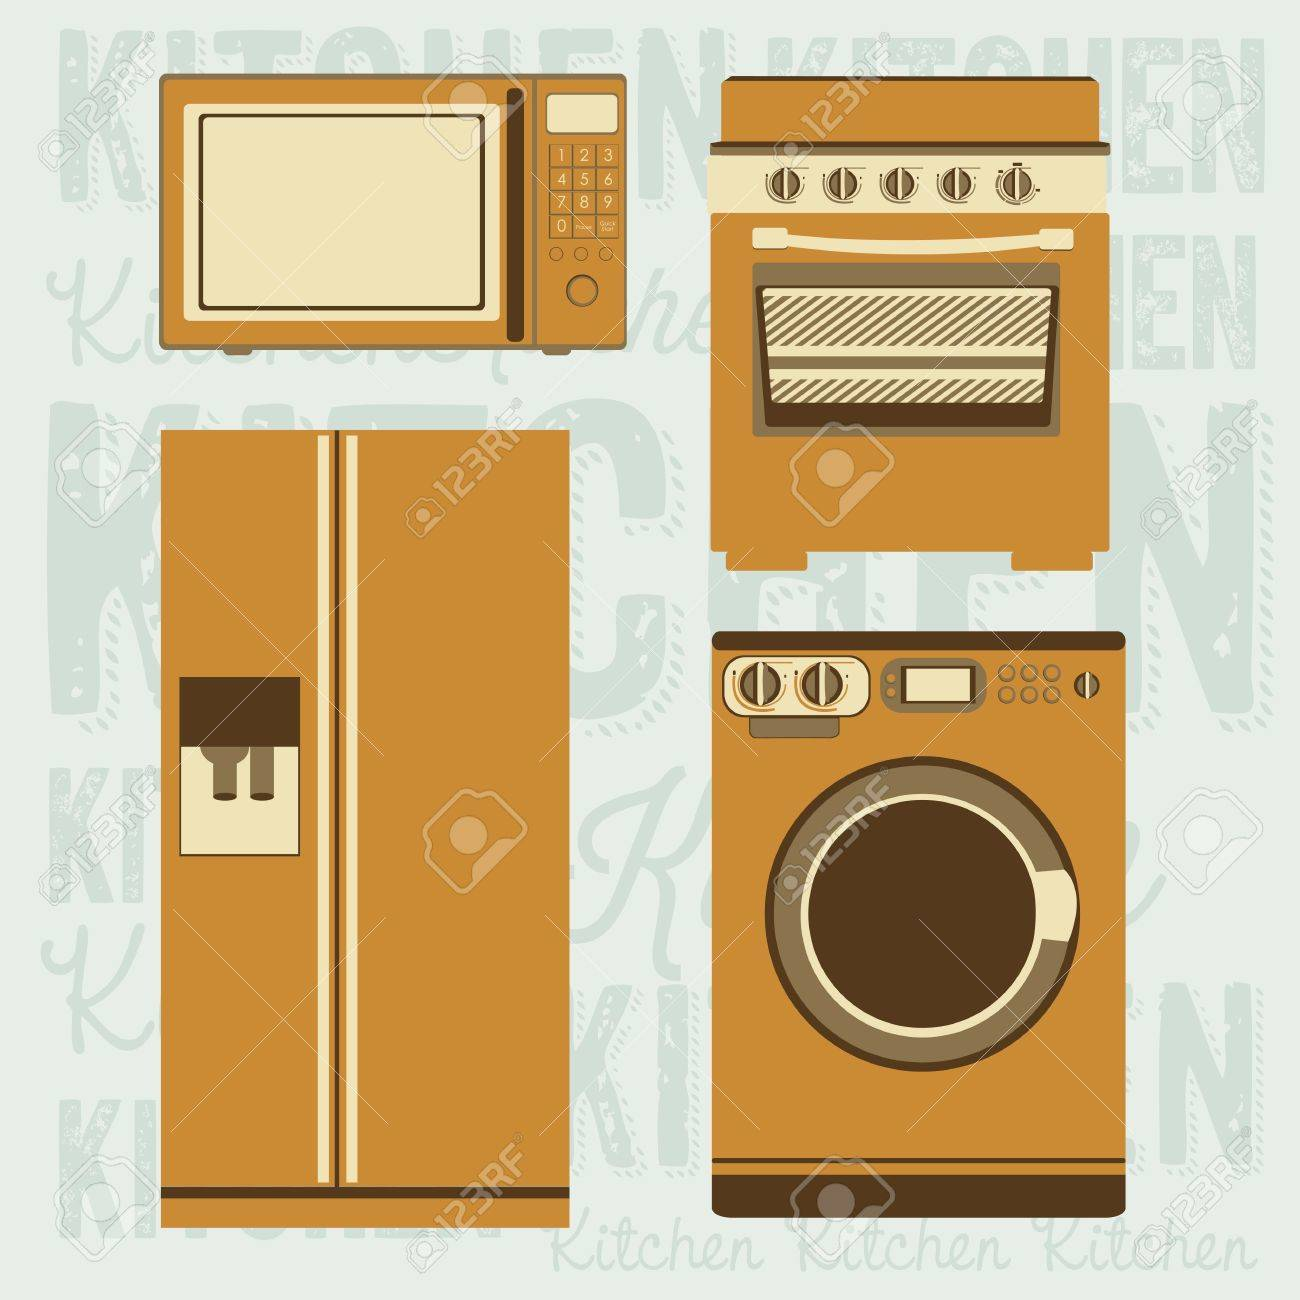 Illustration Of Kitchen Appliances Illustration Of A Microwave A Large Fridge A Washing Machine And A Stove Vector Illustration Royalty Free Cliparts Vectors And Stock Illustration Image 18334977